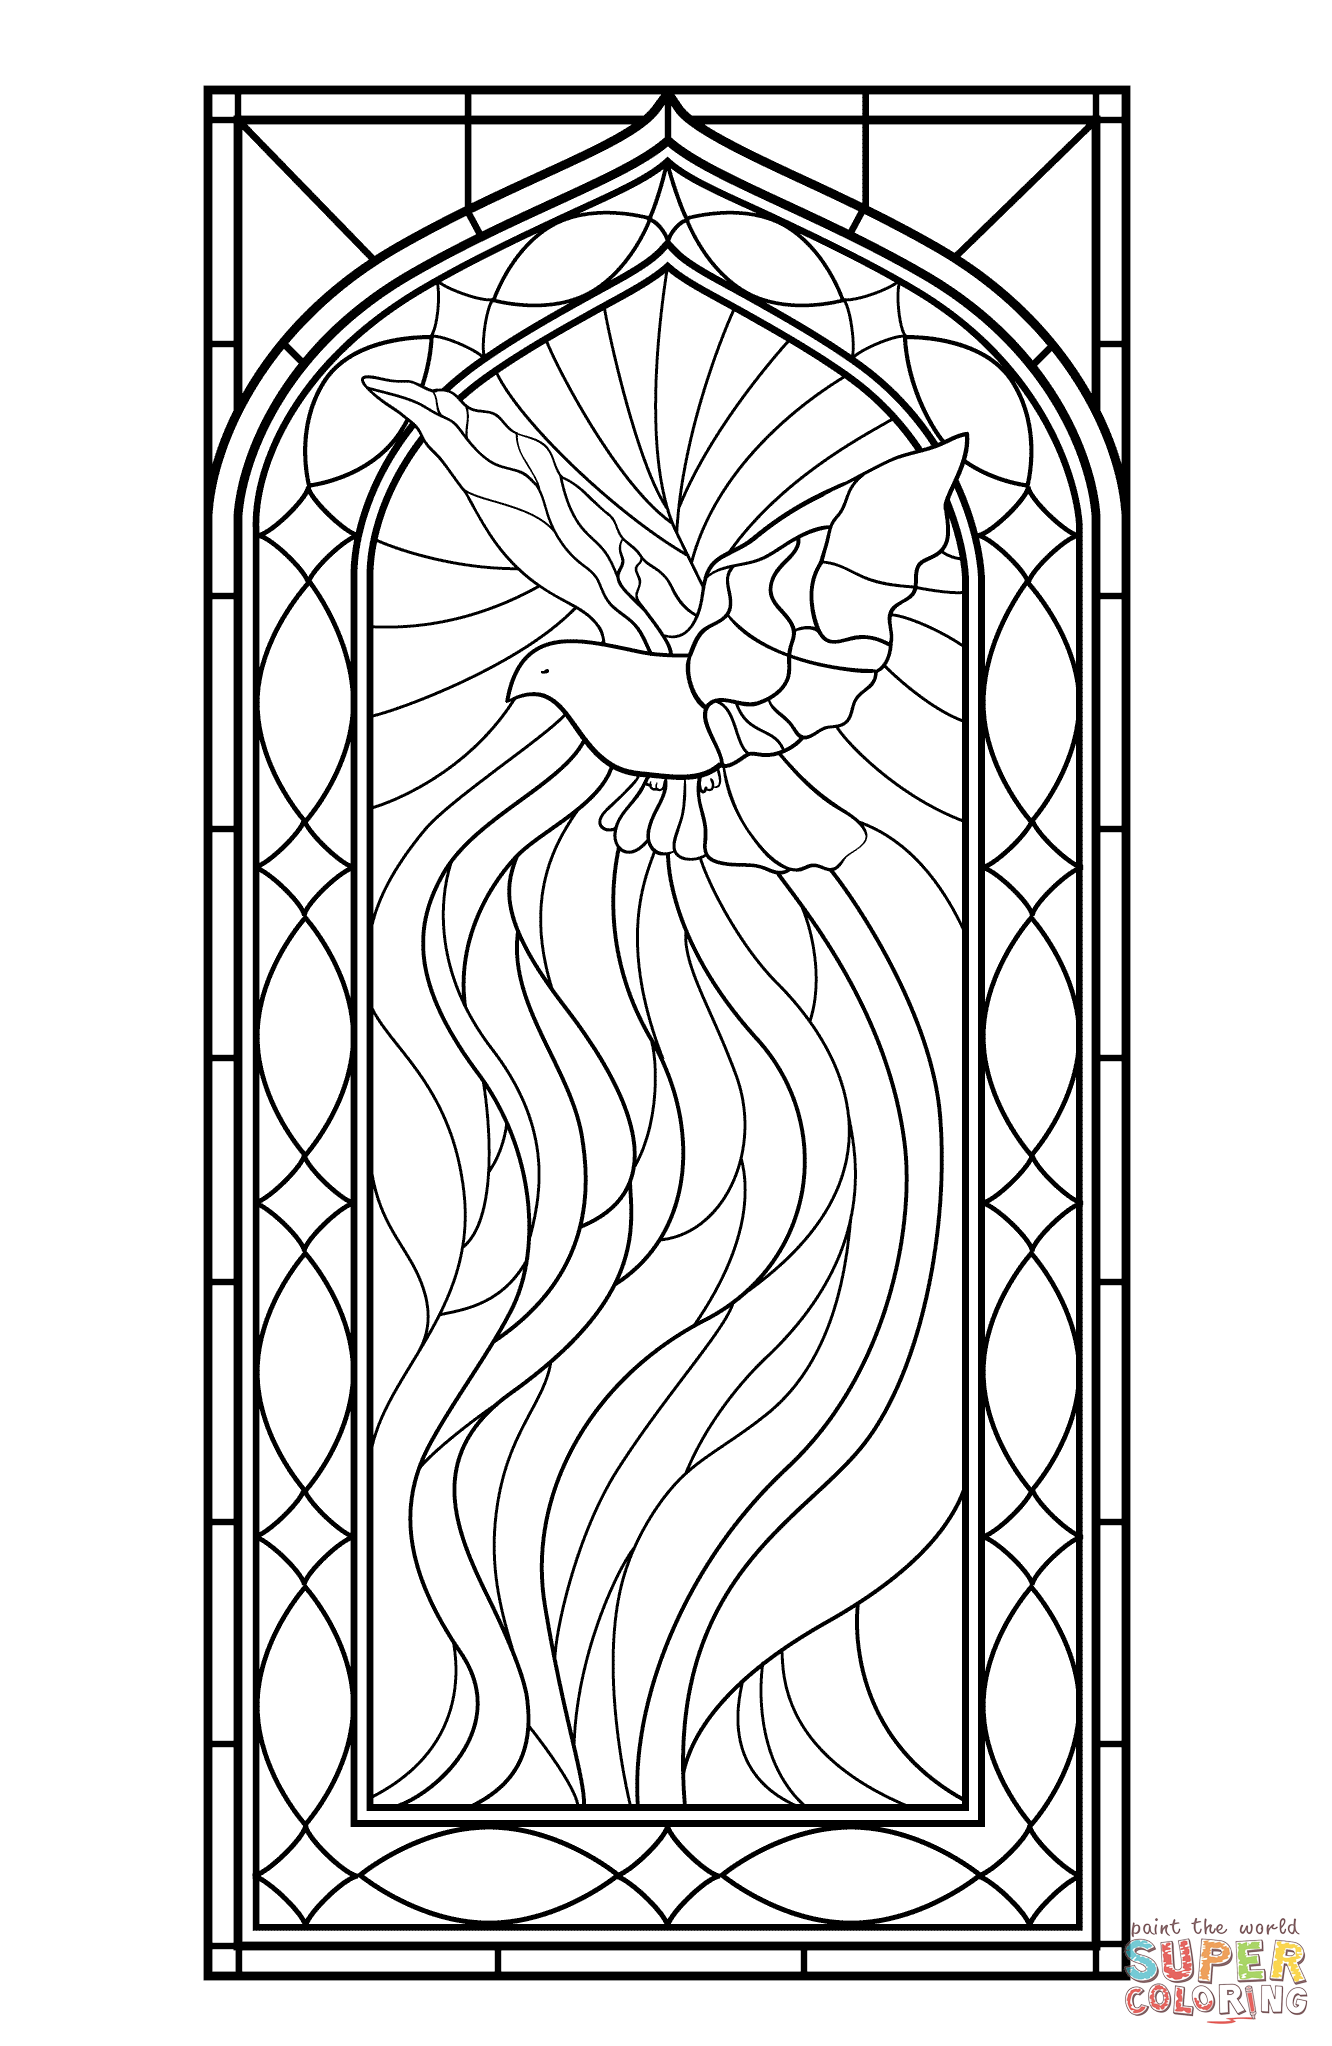 Stained Glass Window With Holy Spirit Stained Glass Patterns Free Bible Coloring Pages Stained Glass Windows